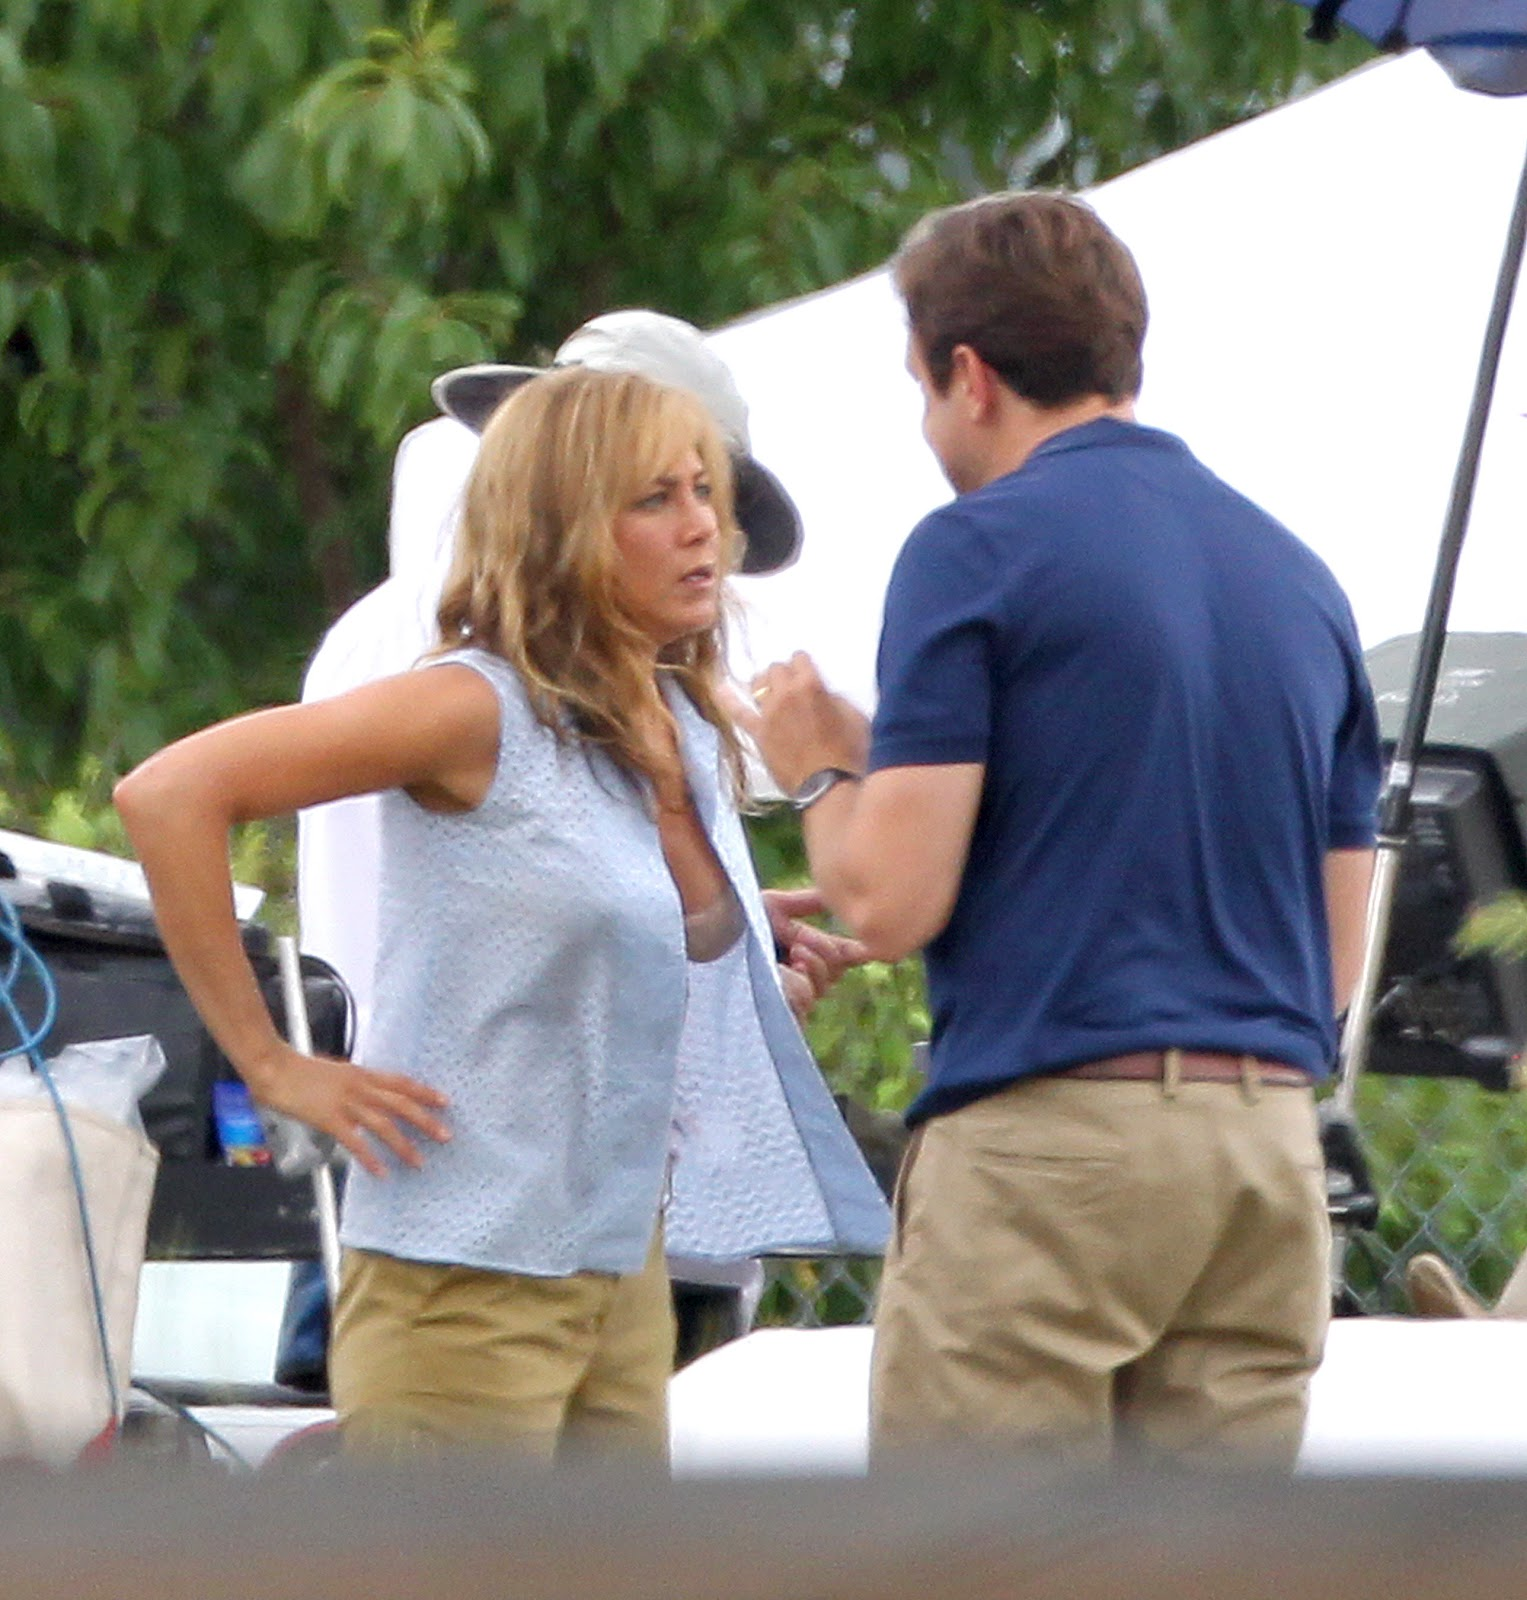 http://2.bp.blogspot.com/-6QHzvgclqB0/UDZIaPwfT6I/AAAAAAAAbX0/__Zm8Oab5Nc/s1600/Jennifer+Aniston+in+a+Bra+on+the+Set+of+We\'re+the+Millers+in+Wilmington+-+August+20,+2012+6.jpg